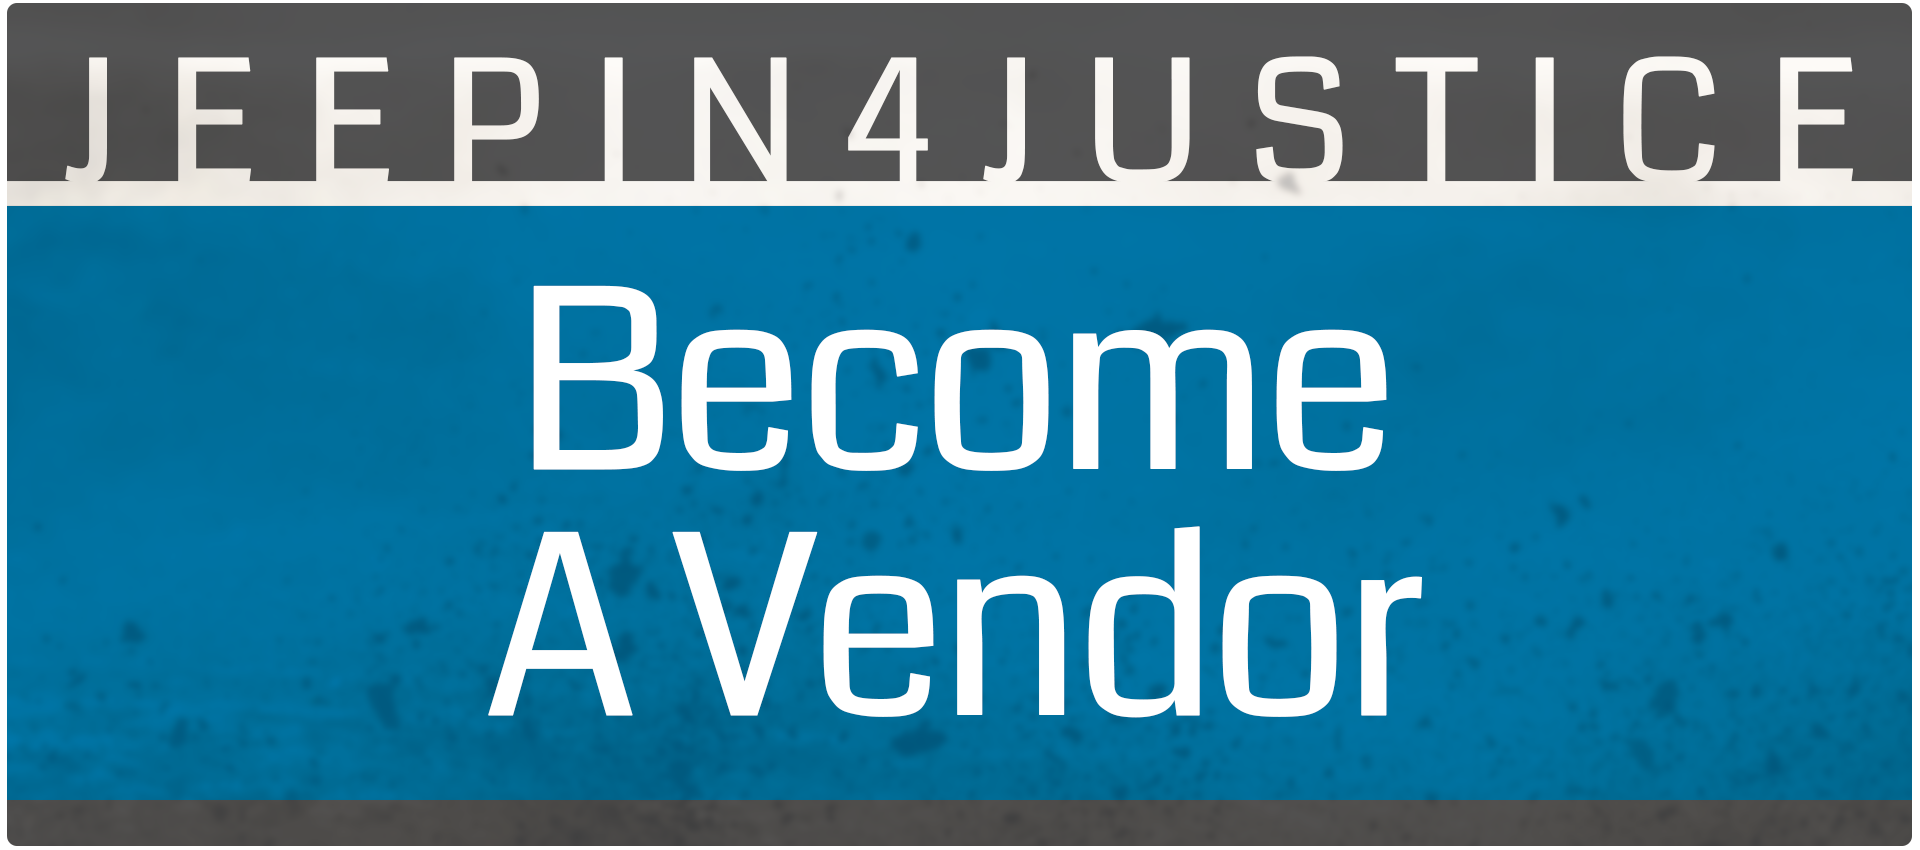 Become A Vendor Header